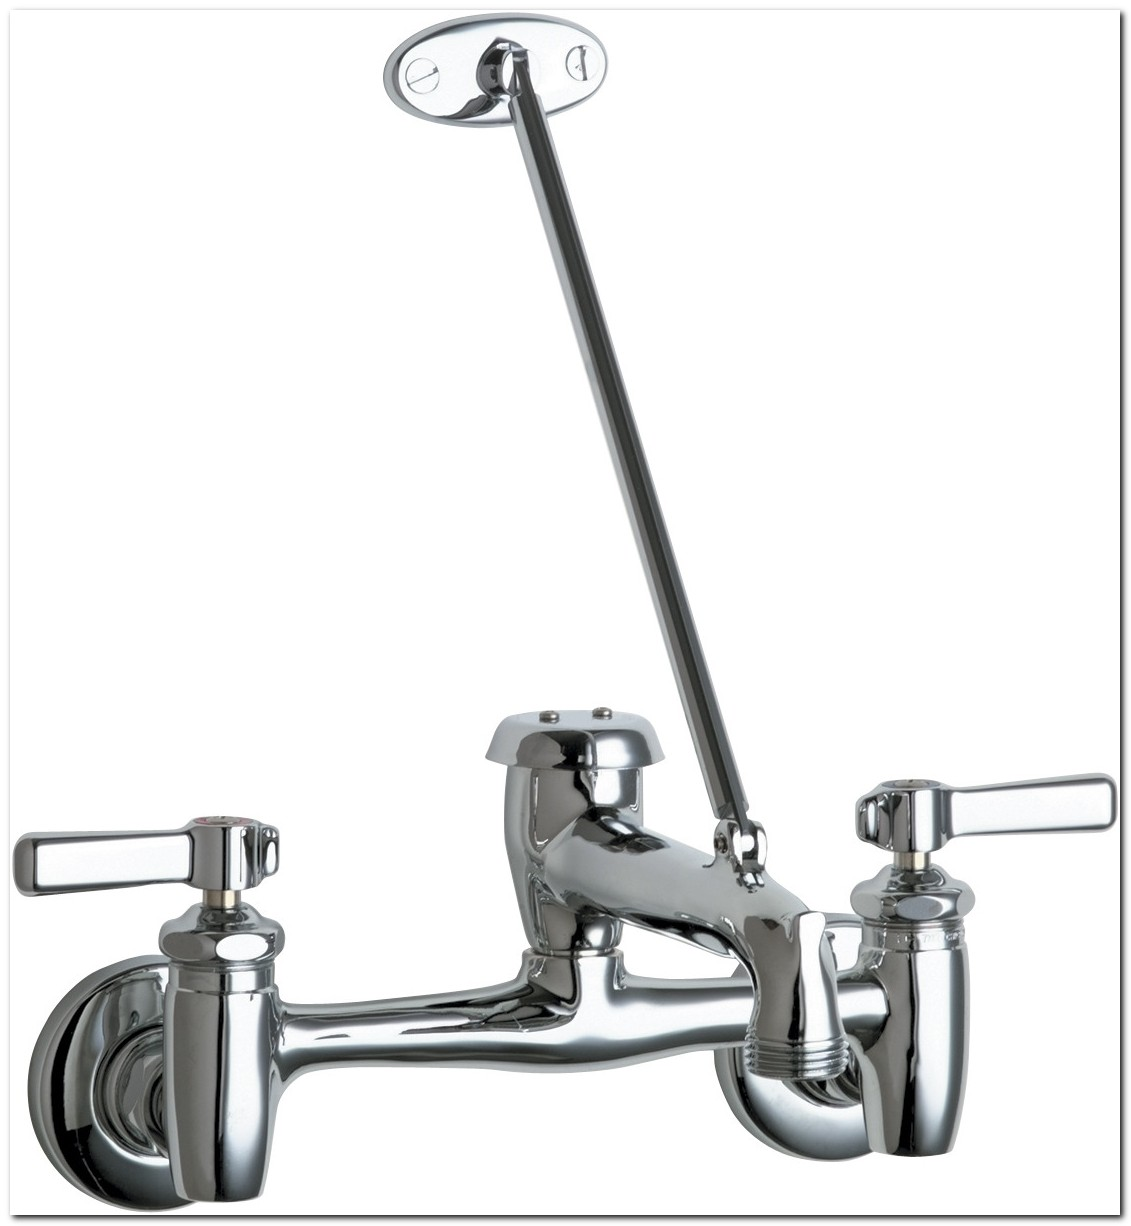 Chicago Mop Sink Faucet With Check Valves